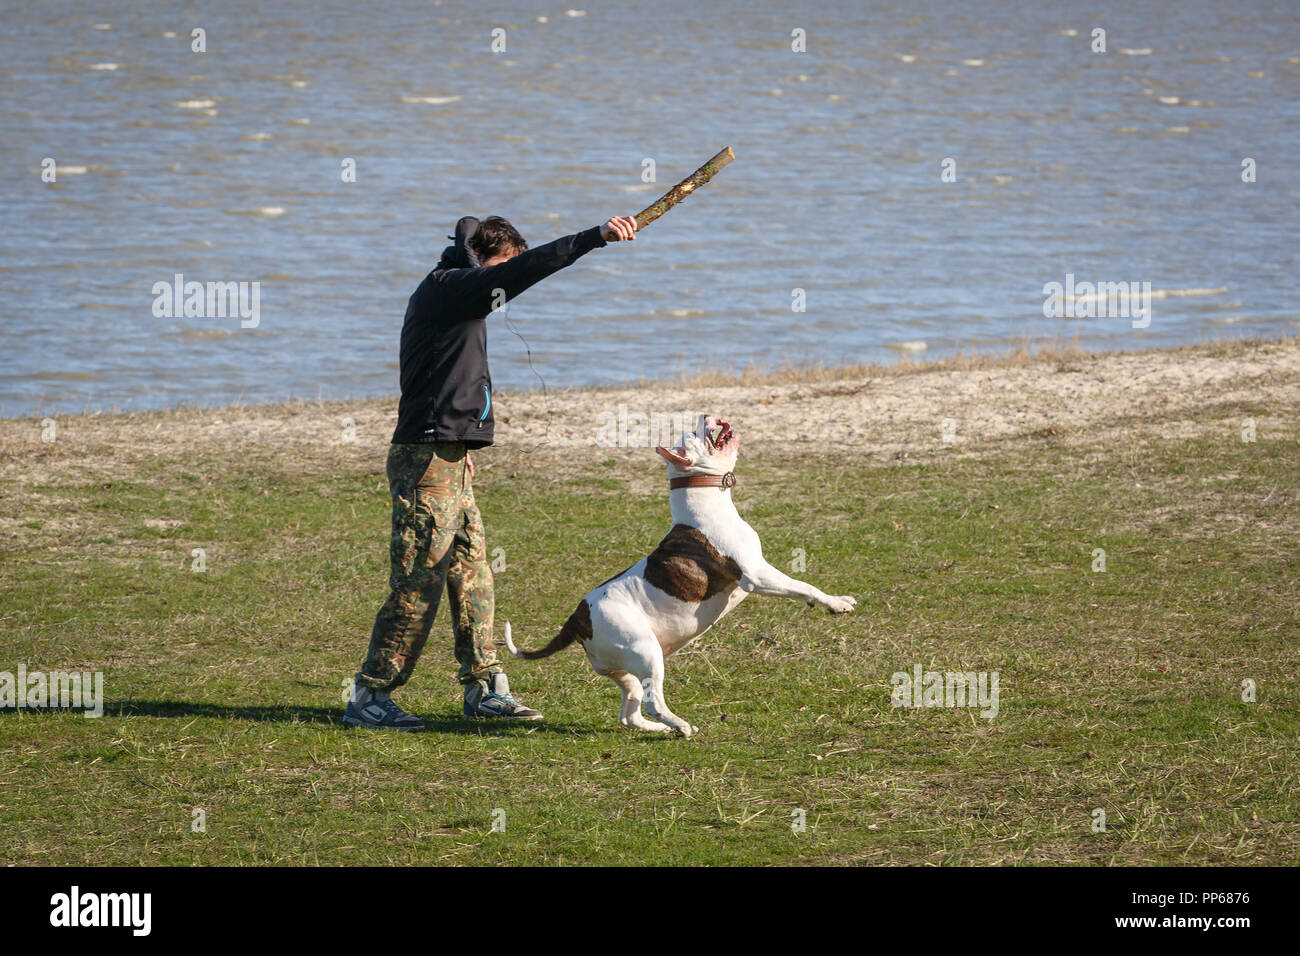 RUSSIA, TAGANROG, 08 MARCH 2016: Guy throws a stick to the white pitbull, so that he brings it to the owner - Stock Image